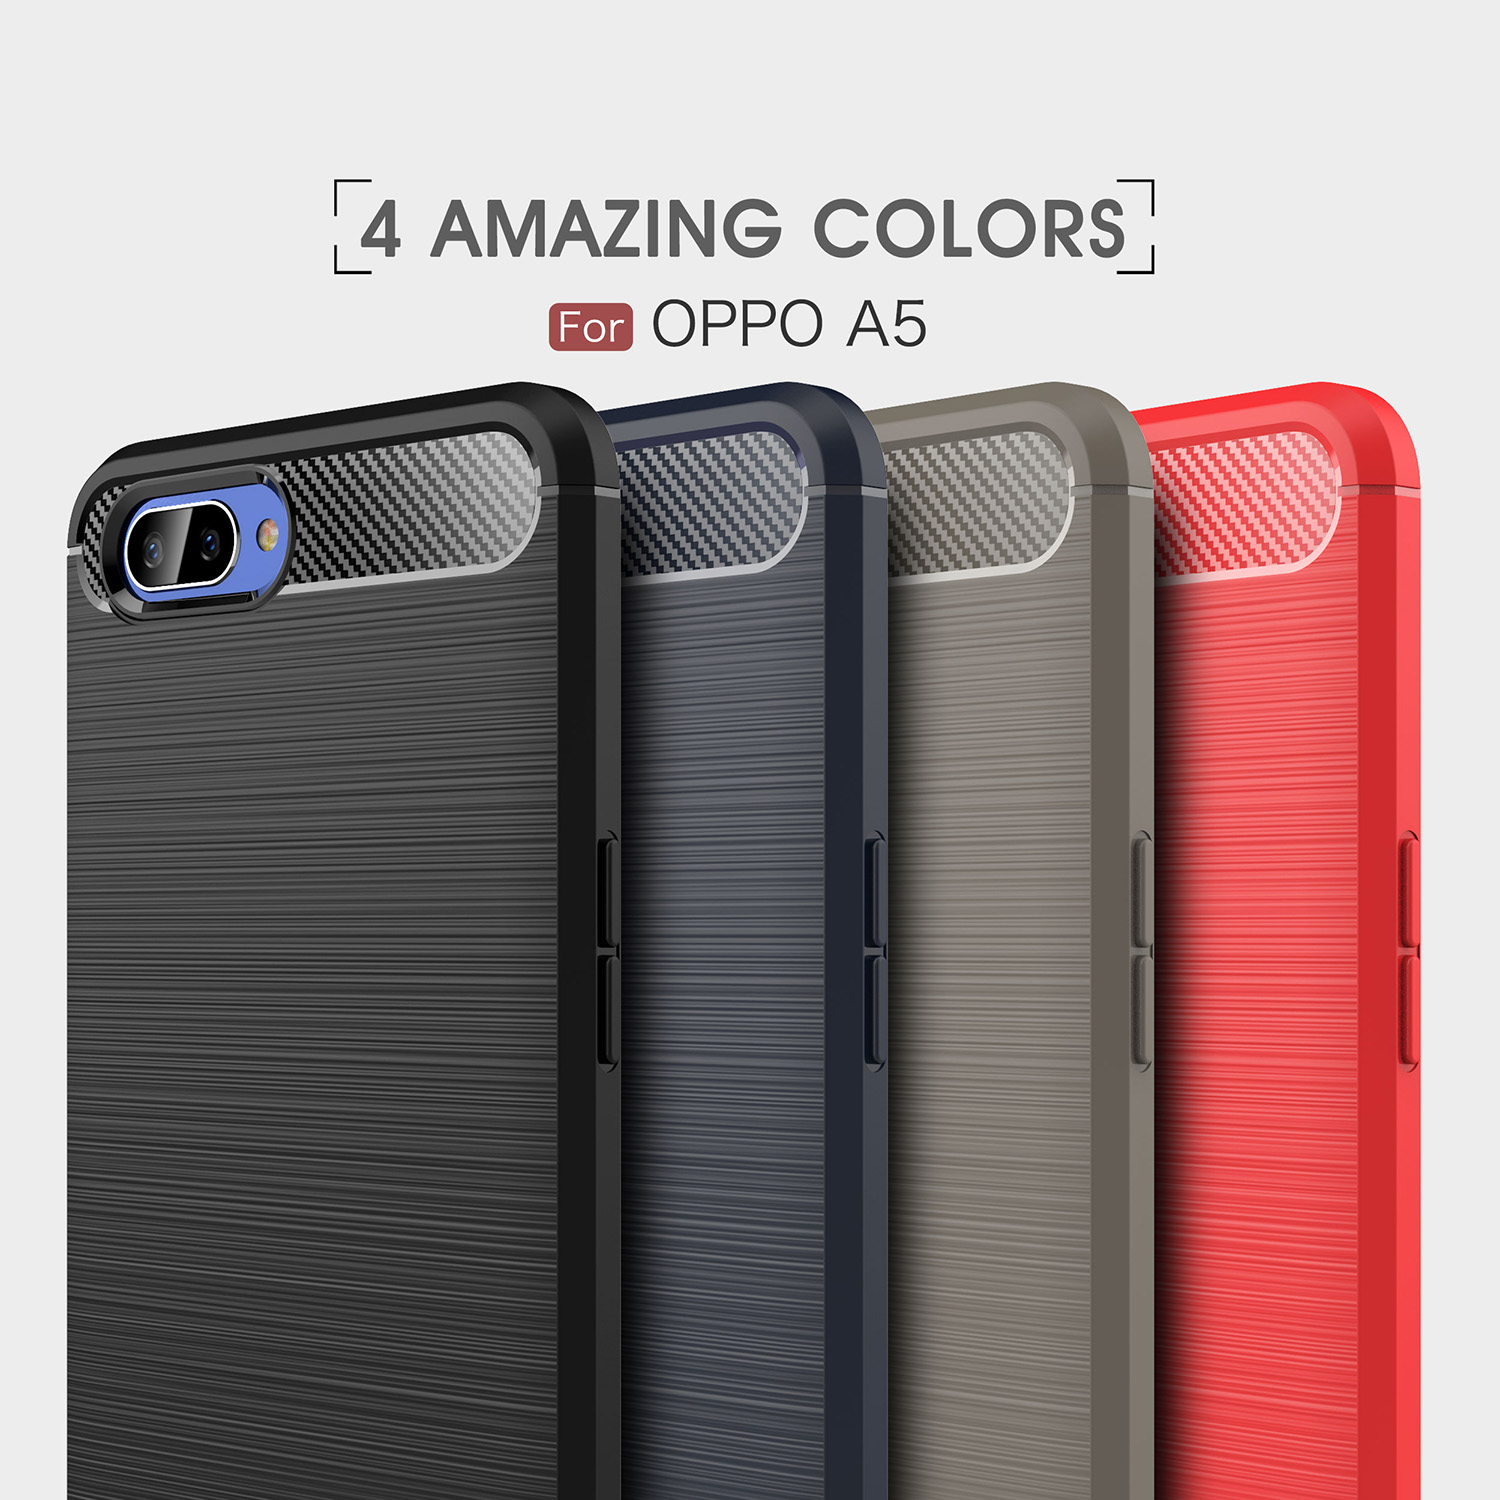 """Wolfsay Carbon Fiber Case Oppo A5 Phone Case Oppo A3S Soft Silicone Cover For Oppo A3s Case Anti Slip Shell For Oppo A3s 6 2"""" in Fitted Cases from"""